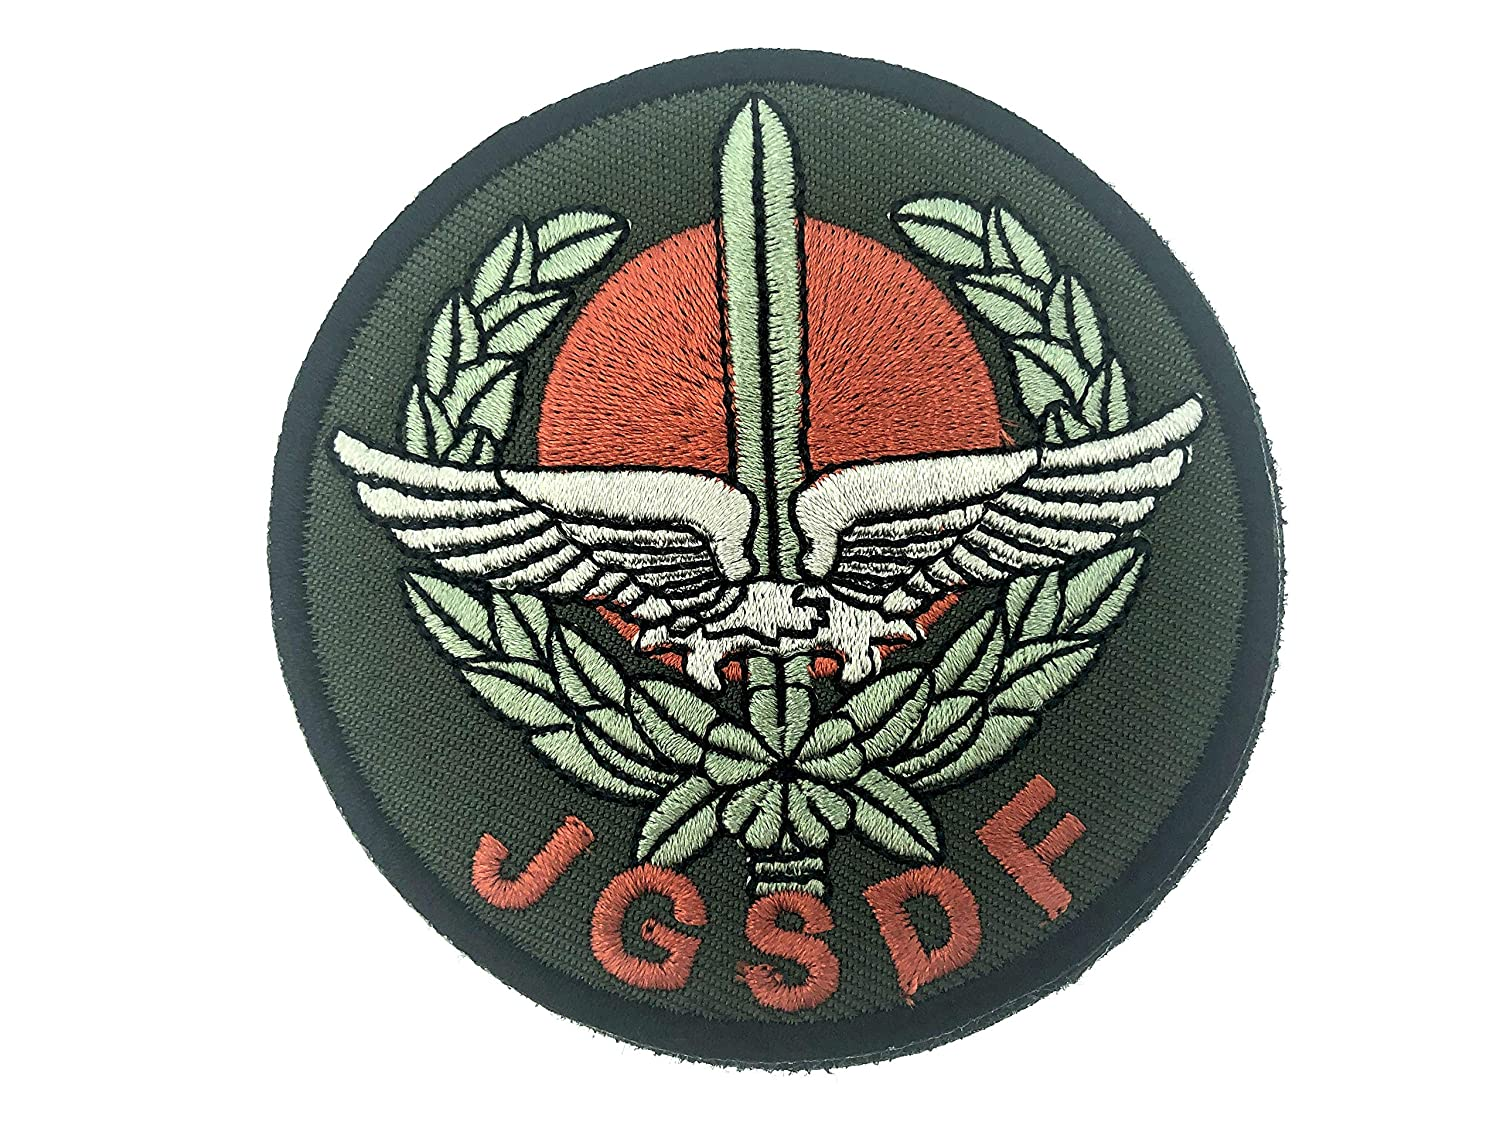 JGSDF Japan Ground Self-Defense Force Brod/é Airsoft Morale Cosplay Patch